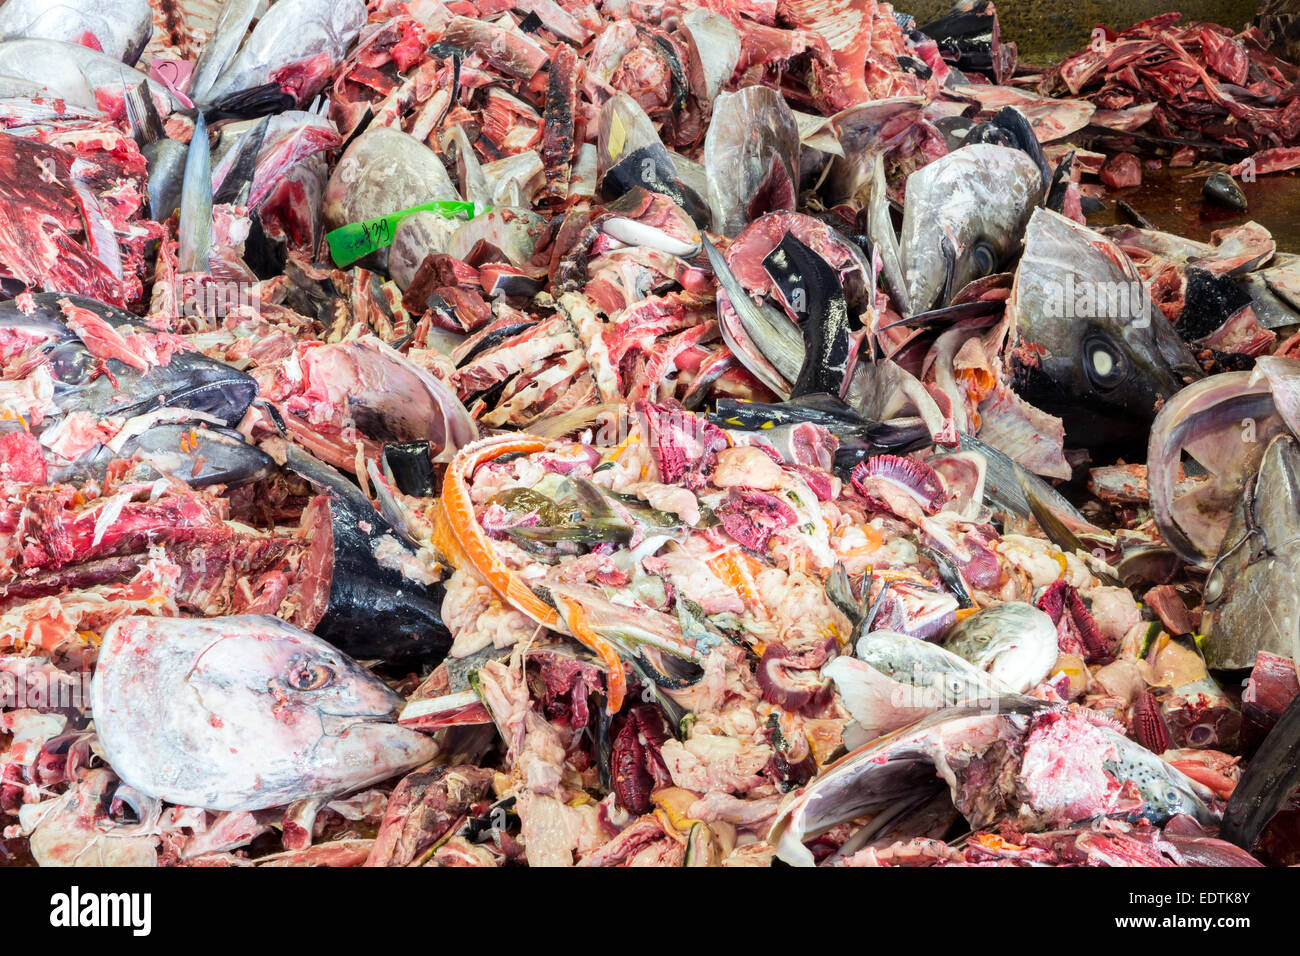 Fish garbage in the large Kitchen Waste rubbish, for recycling Stock Photo